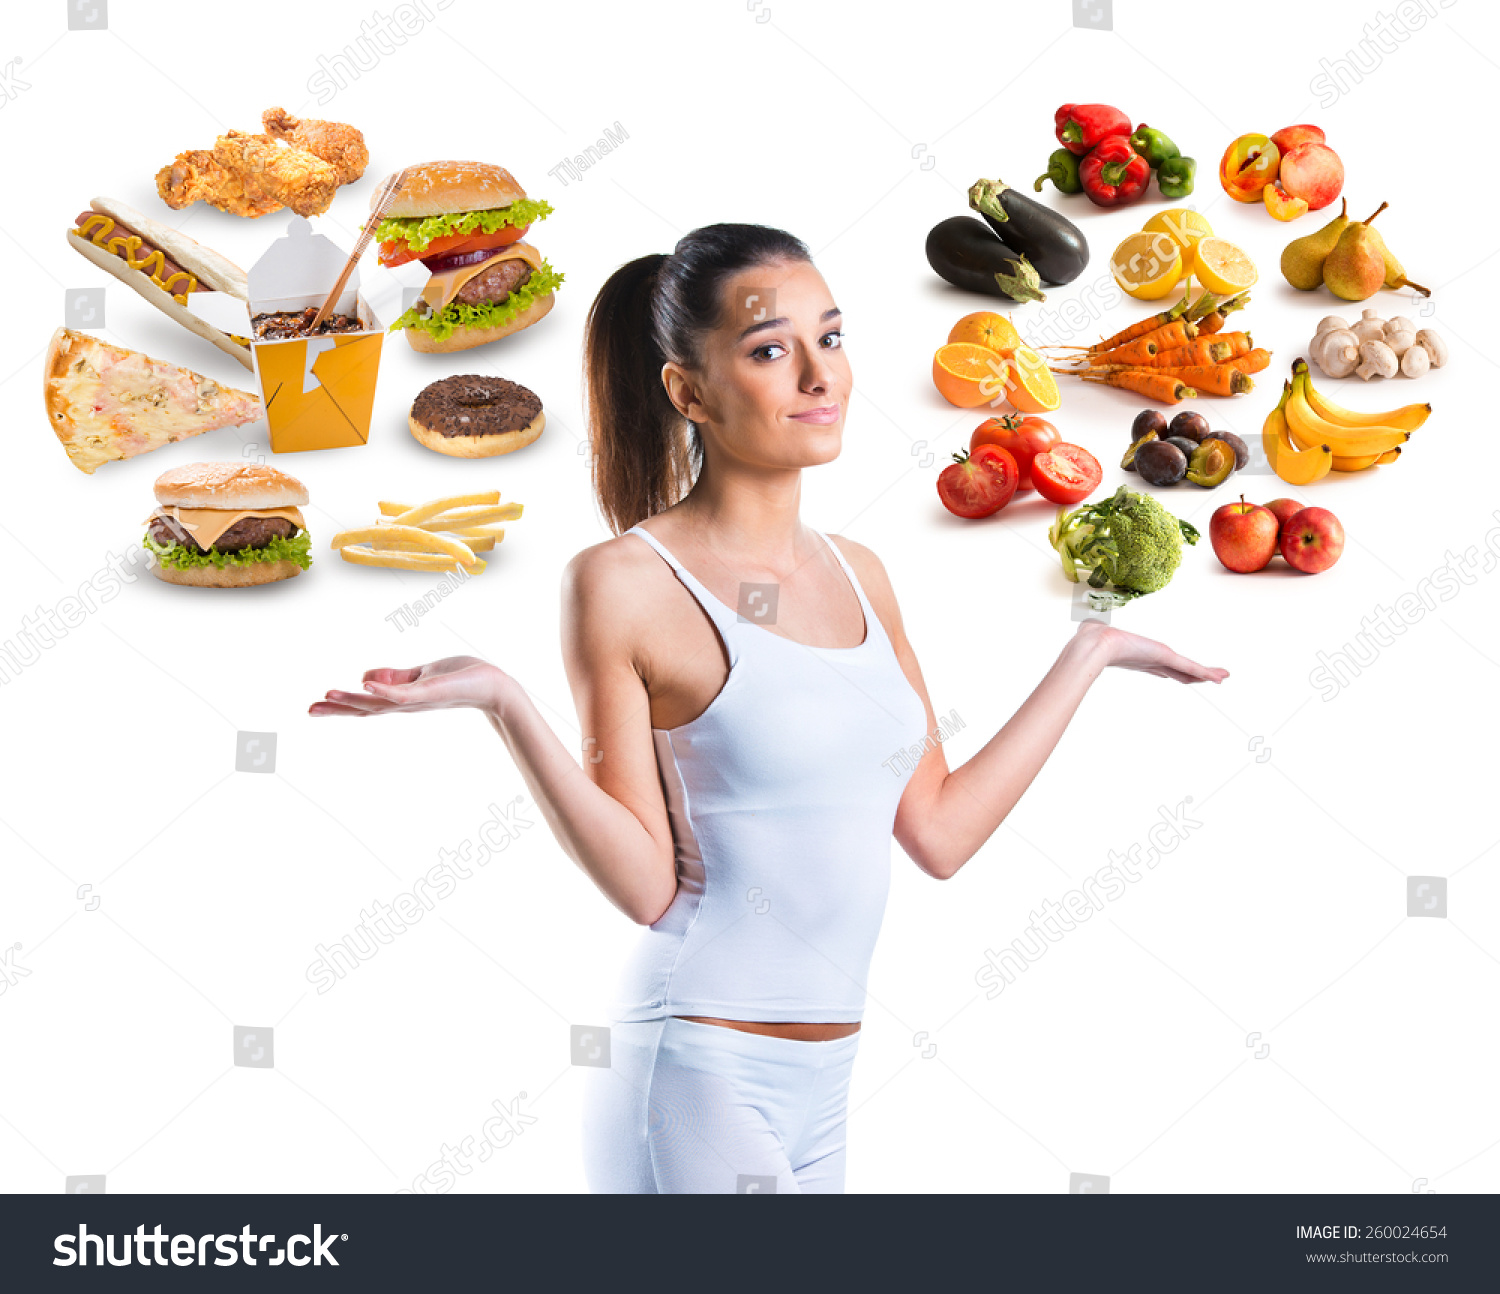 healthy vs unhealthy foods essay Free essay: your complete name instructor's name course name date healthy  food is  the paper discusses healthy and junk food choices, their impact on  human body and  marketing food for children: healthy food versus junk  food.